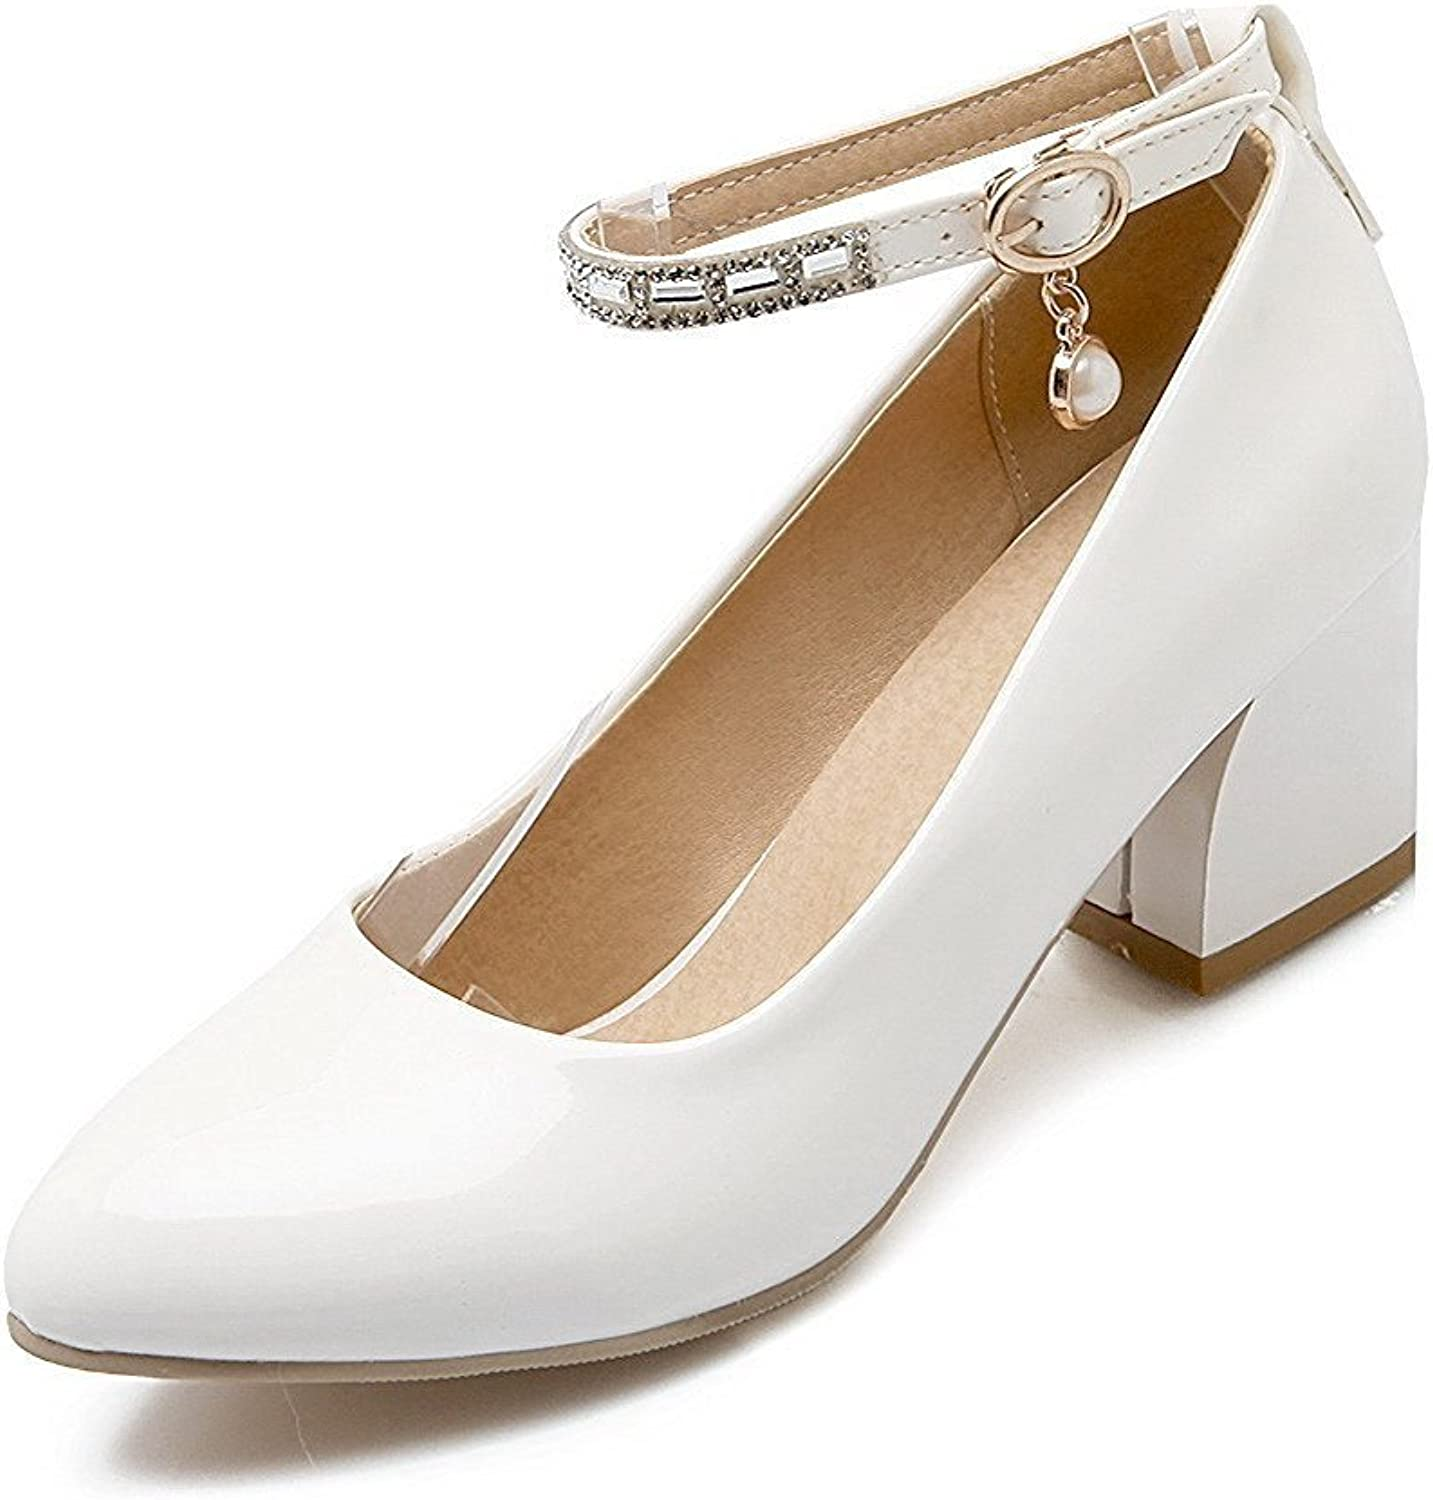 Laolaooo shoes Women's Patent Leather Pointed Closed Toe Low-Heels Buckle Solid Pumps-shoes